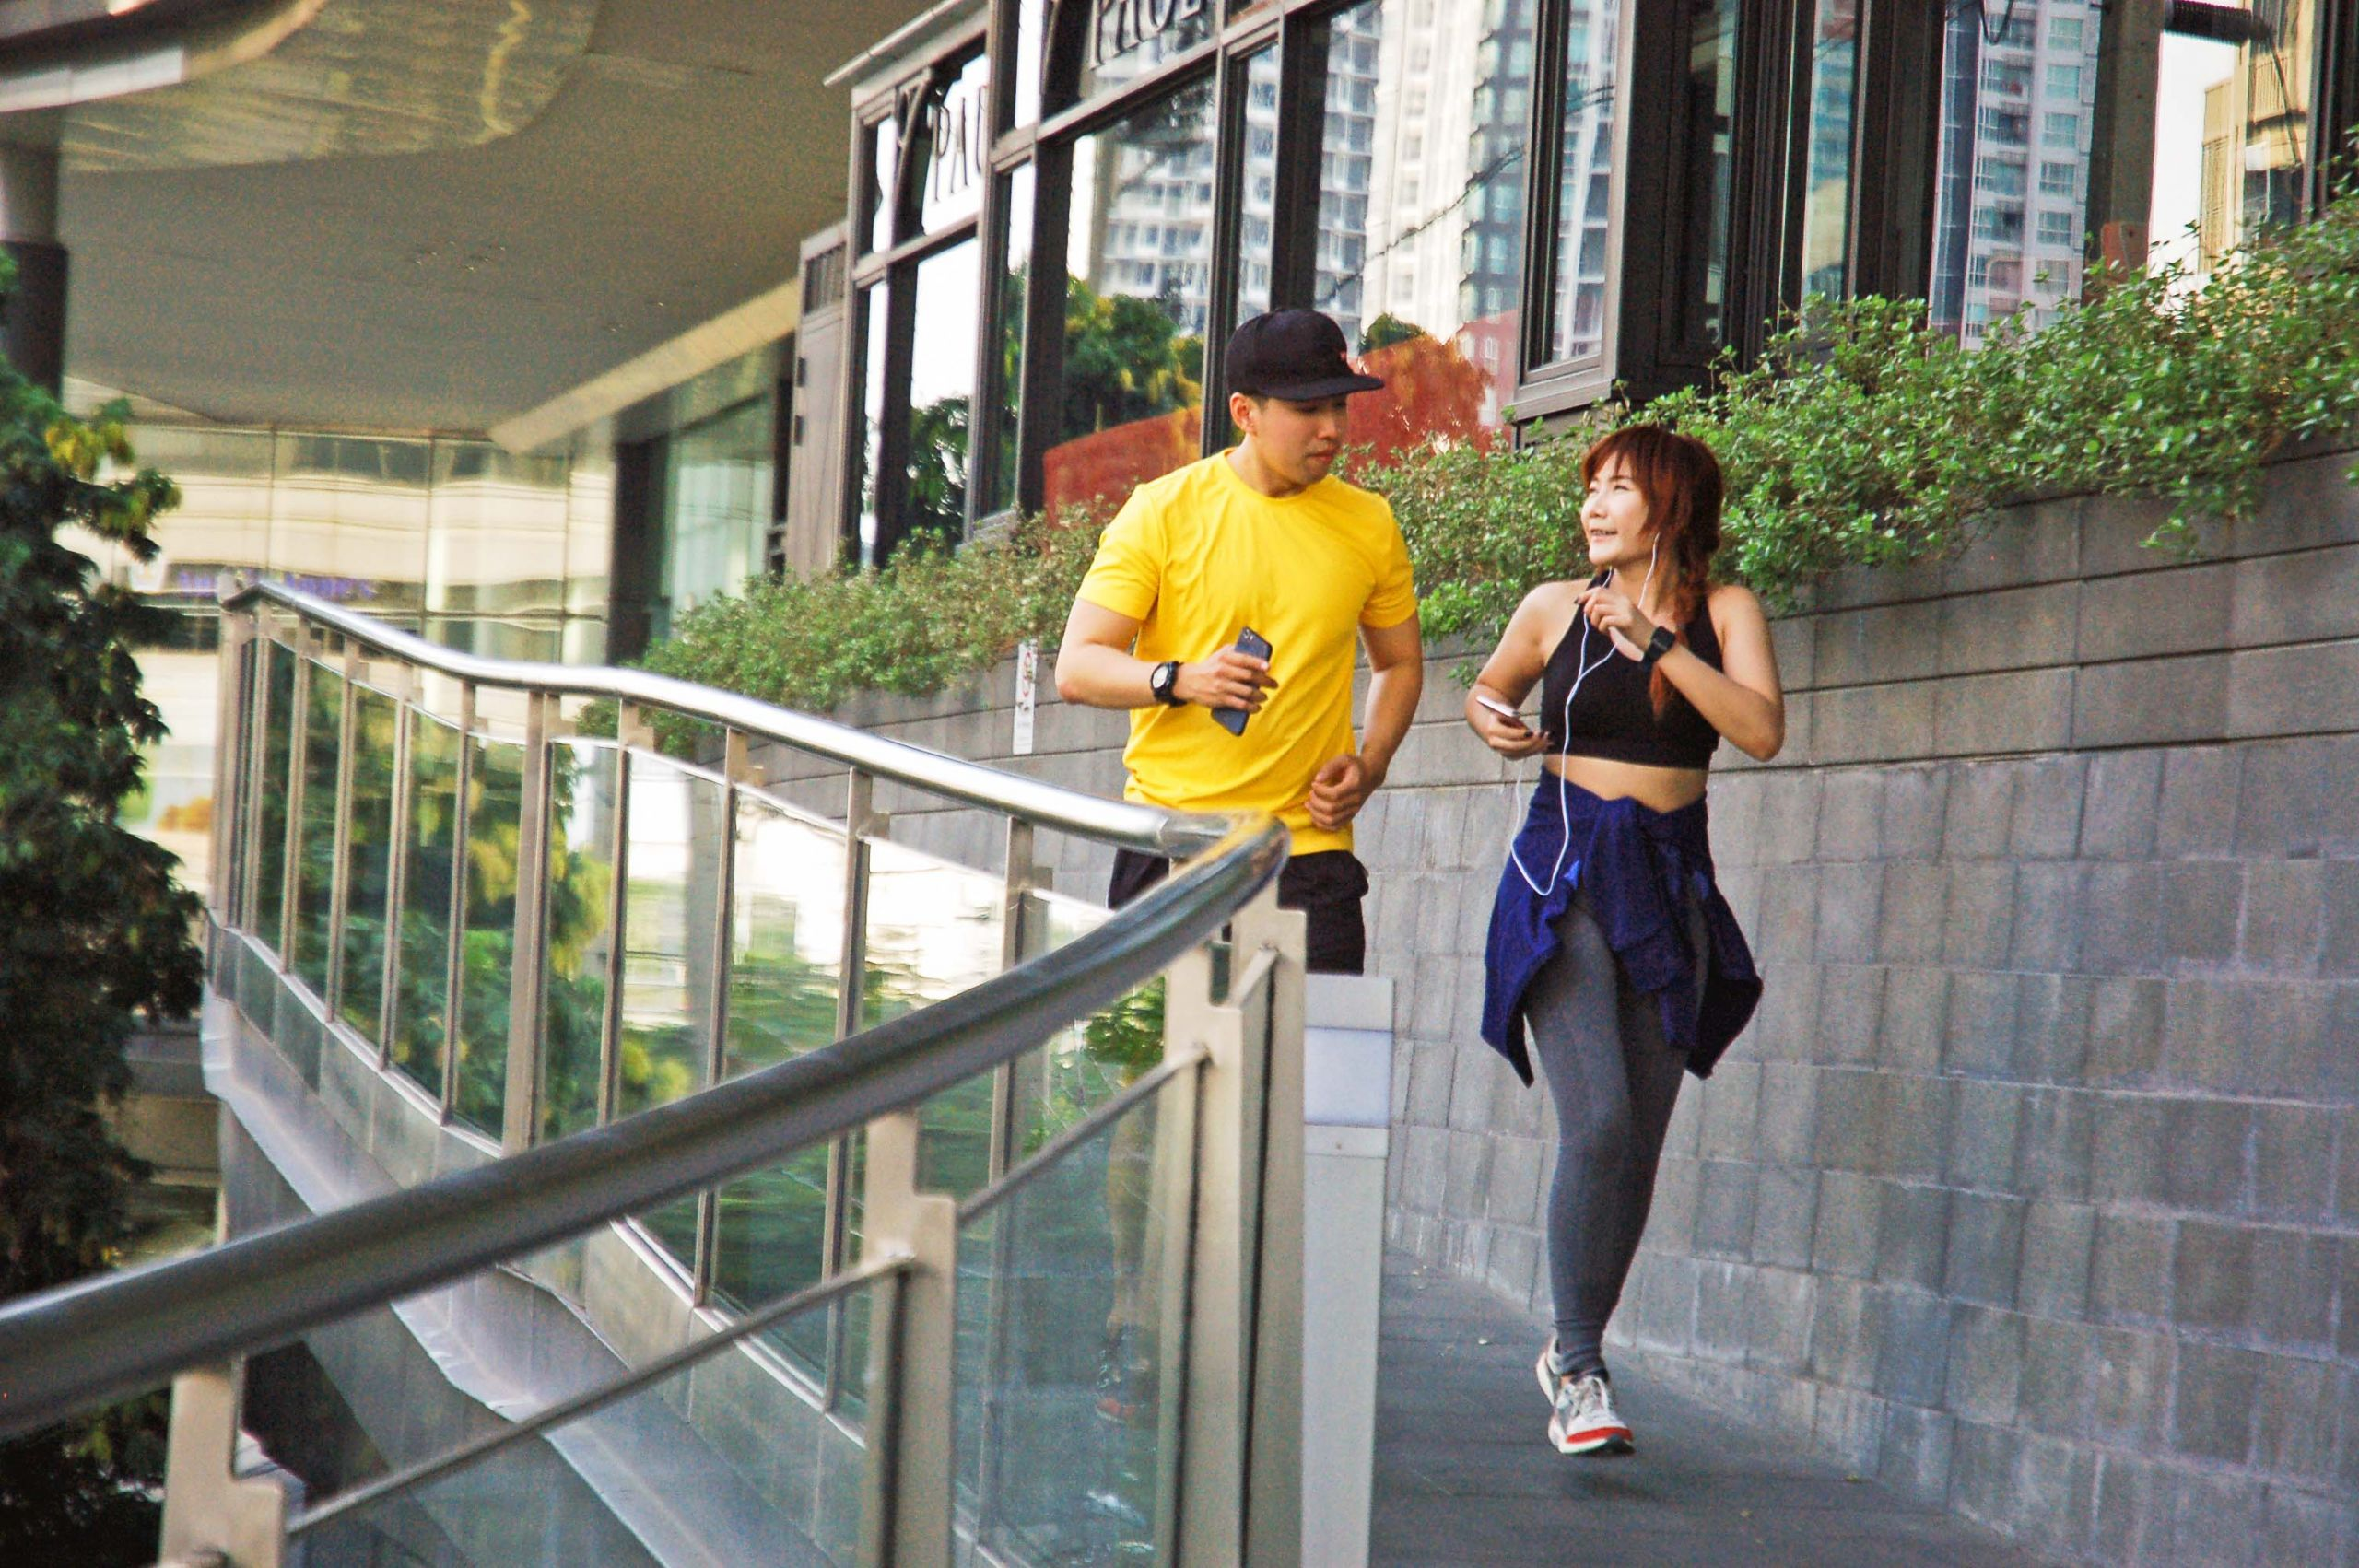 Get some fresh air while getting in a good workout, it's a win-win.